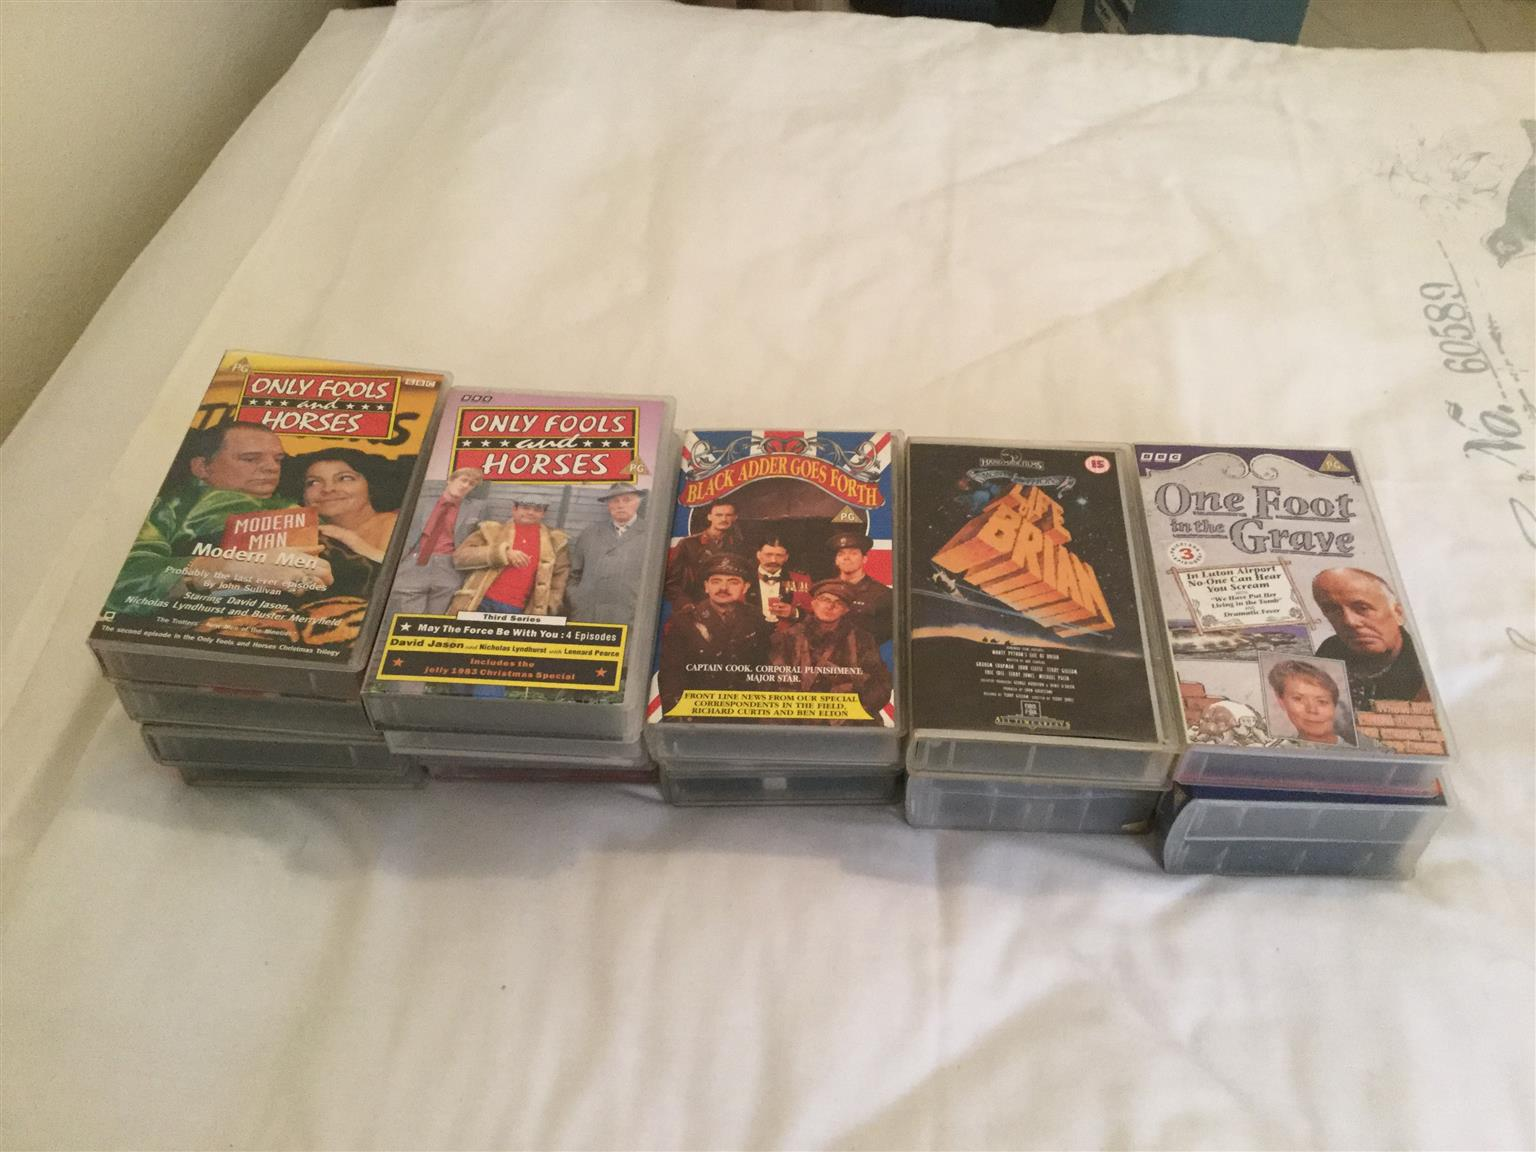 VHS Recorder and Comedy Videos